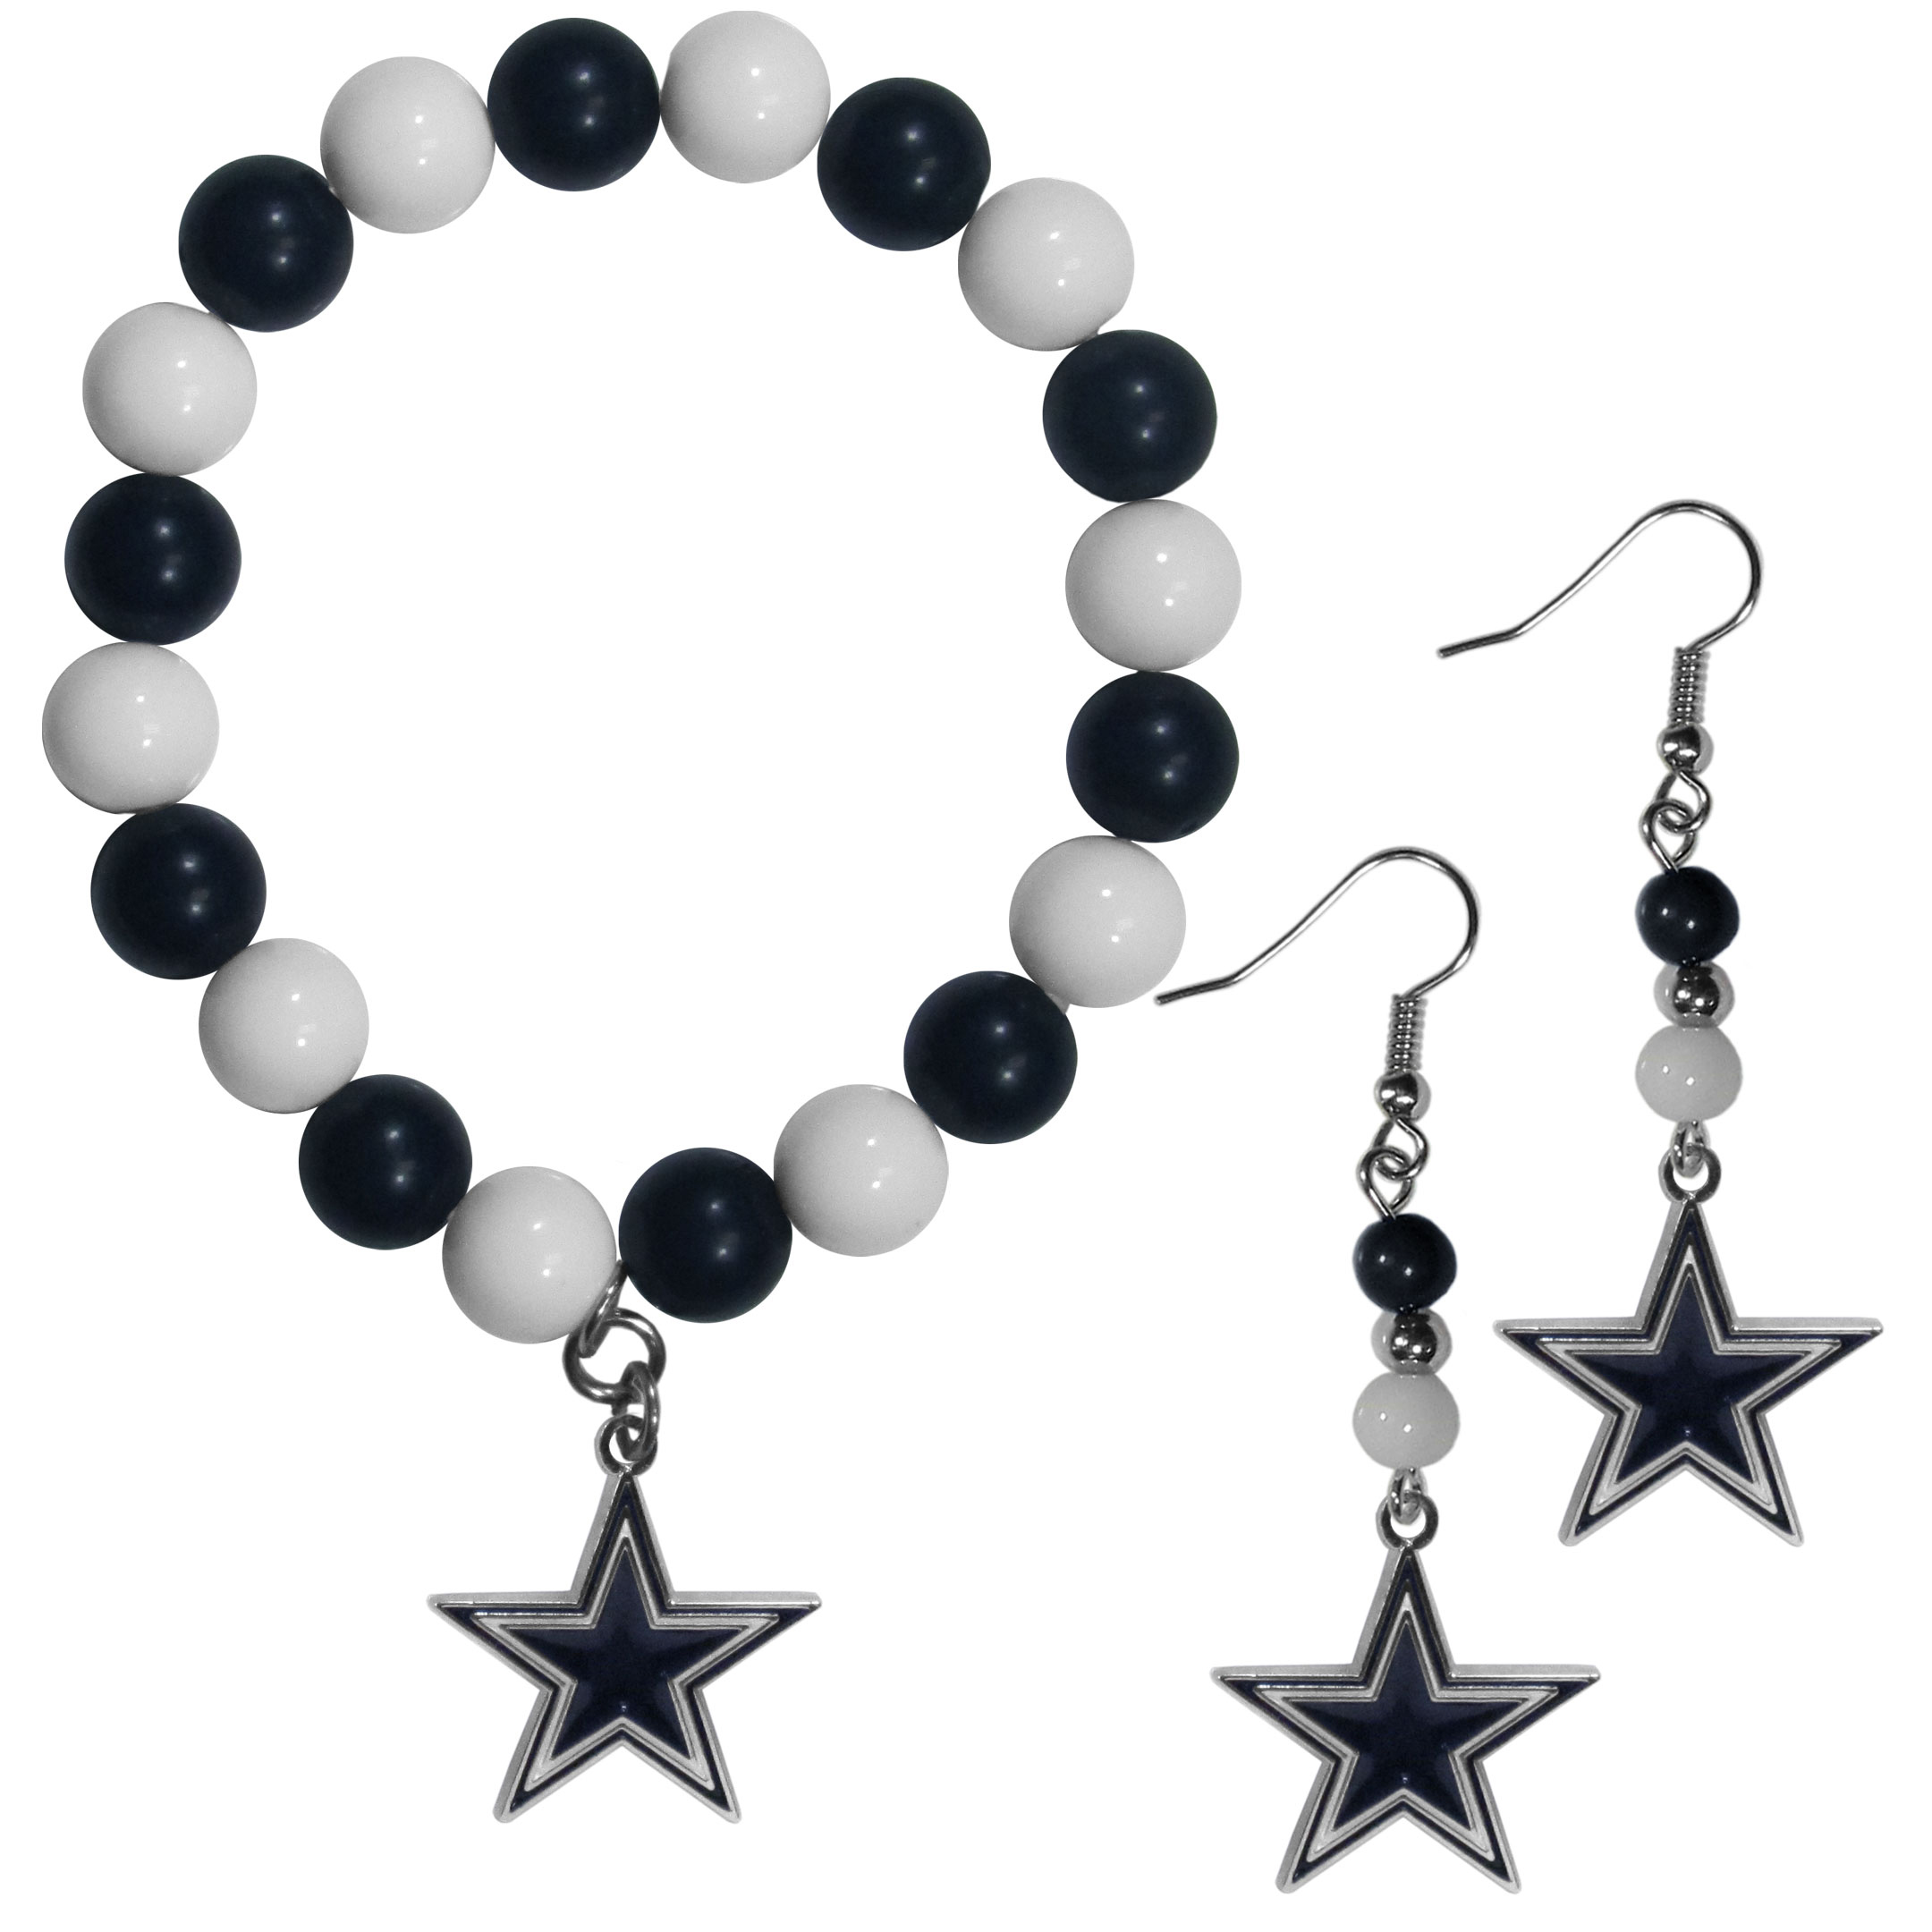 Dallas Cowboys Fan Bead Earrings and Bracelet Set - This fun and colorful Dallas Cowboys fan bead jewelry set is fun and casual with eye-catching beads in bright team colors. The fashionable dangle earrings feature a team colored beads that drop down to a carved and enameled charm. The stretch bracelet has larger matching beads that make a striking statement and have a matching team charm. These sassy yet sporty jewelry pieces make a perfect gift for any female fan. Spice up your game-day outfit with these fun colorful earrings and bracelet that are also cute enough for any day.